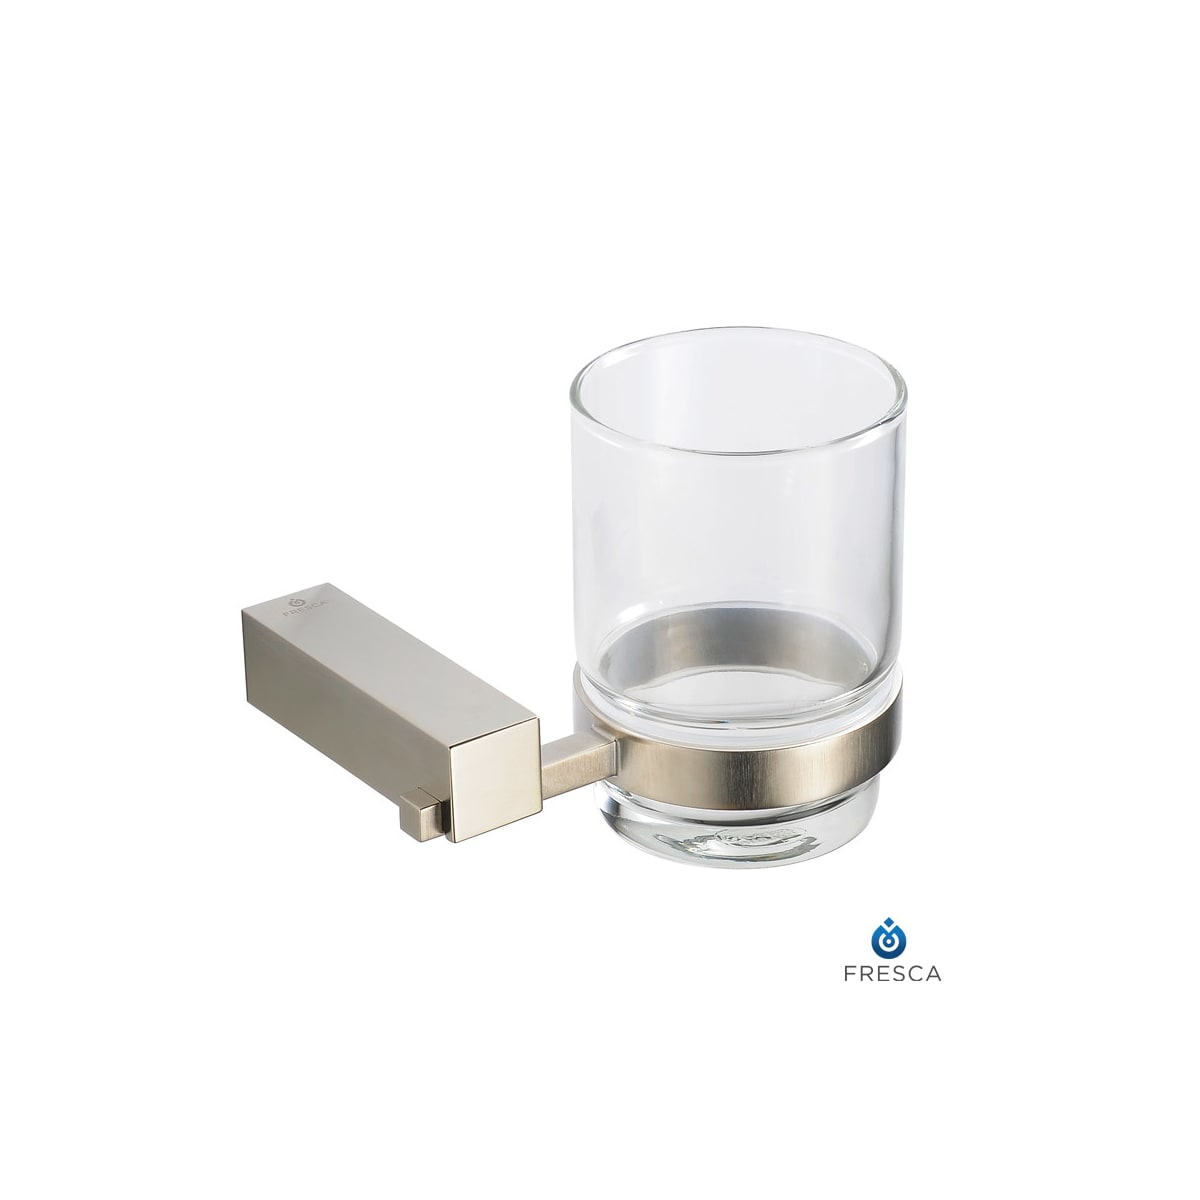 Fresca Fac0410bn Brushed Nickel Ottimo 4 25 Wide Wall Mounted Tumbler Holder Faucetdirect Com